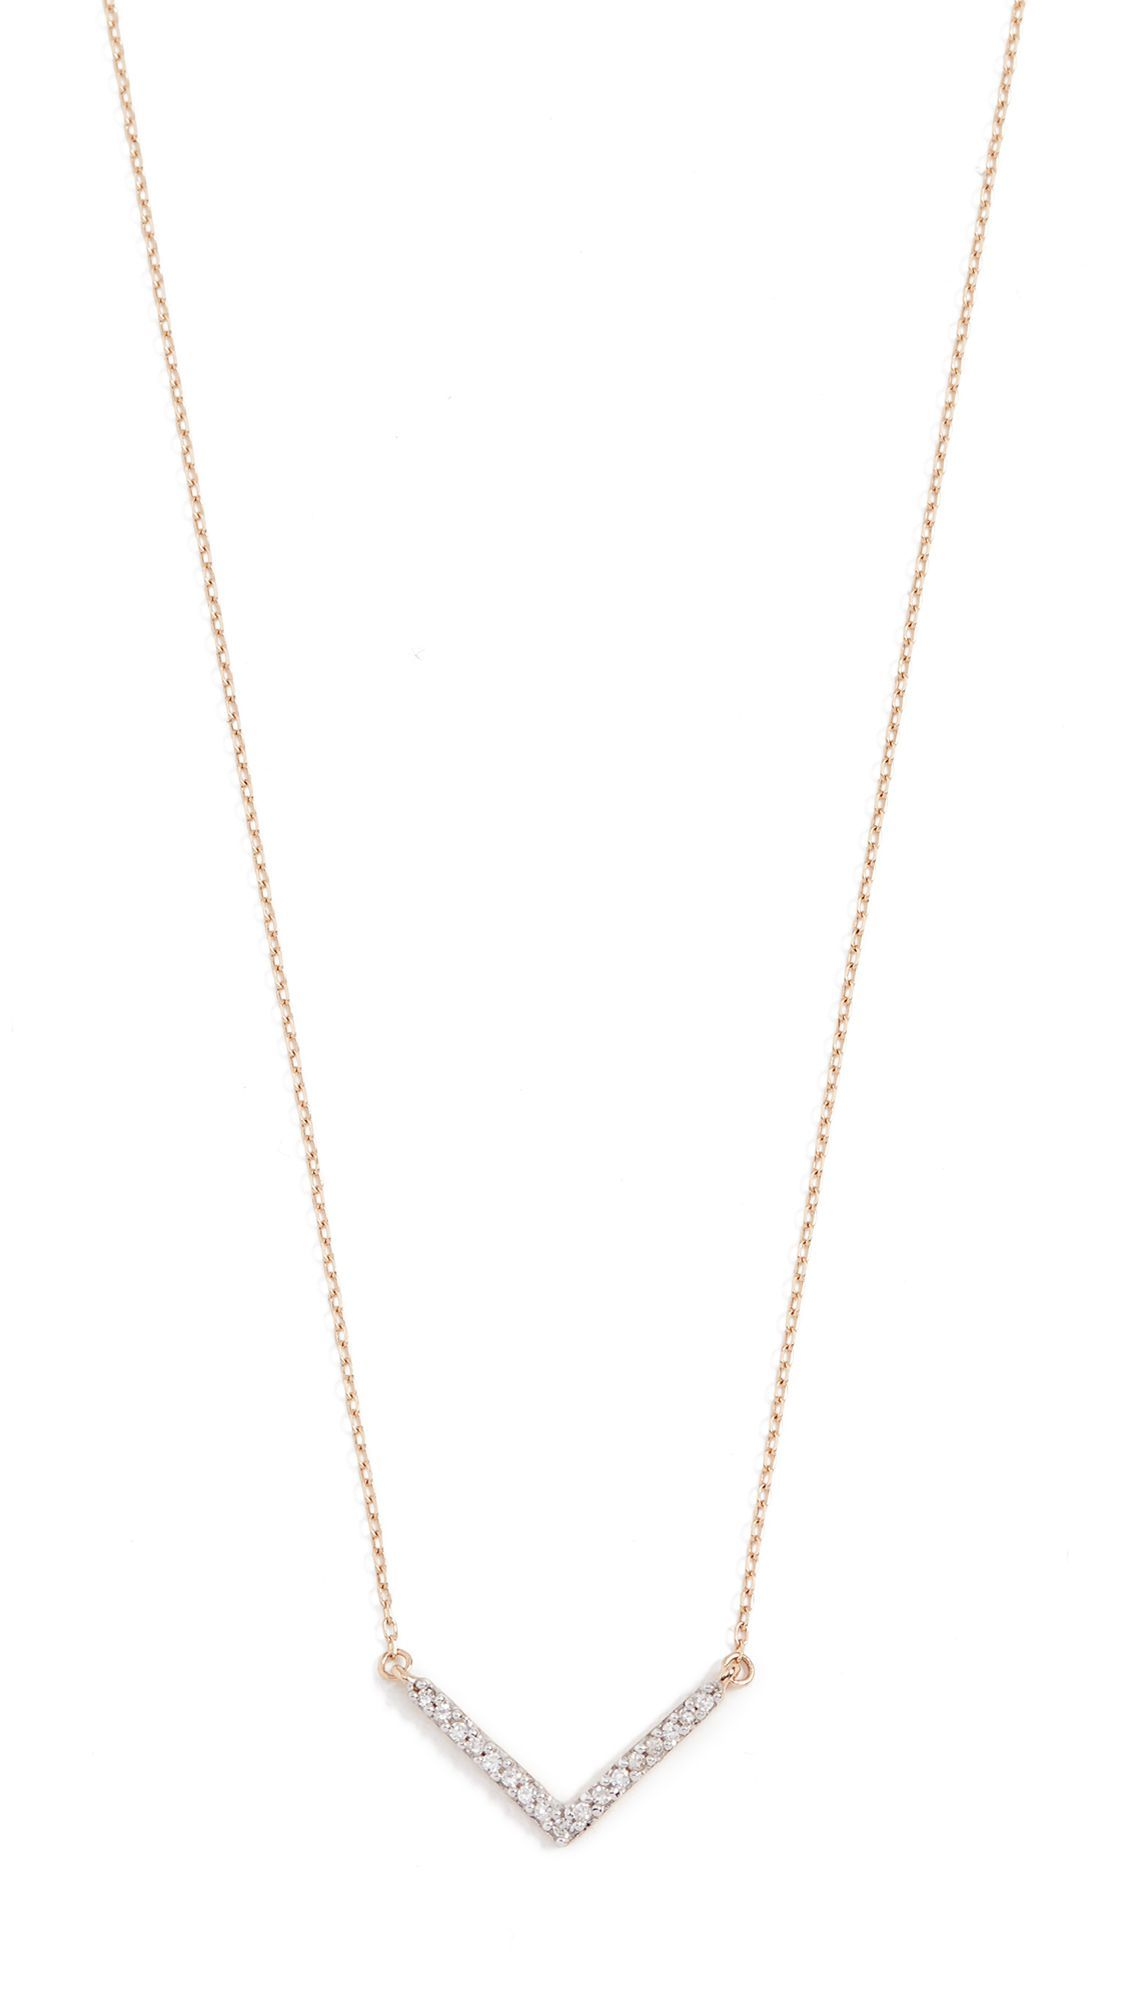 14K Yellow Gold Plated Women/'s Choker Necklace Small Rings Link Design Pendant